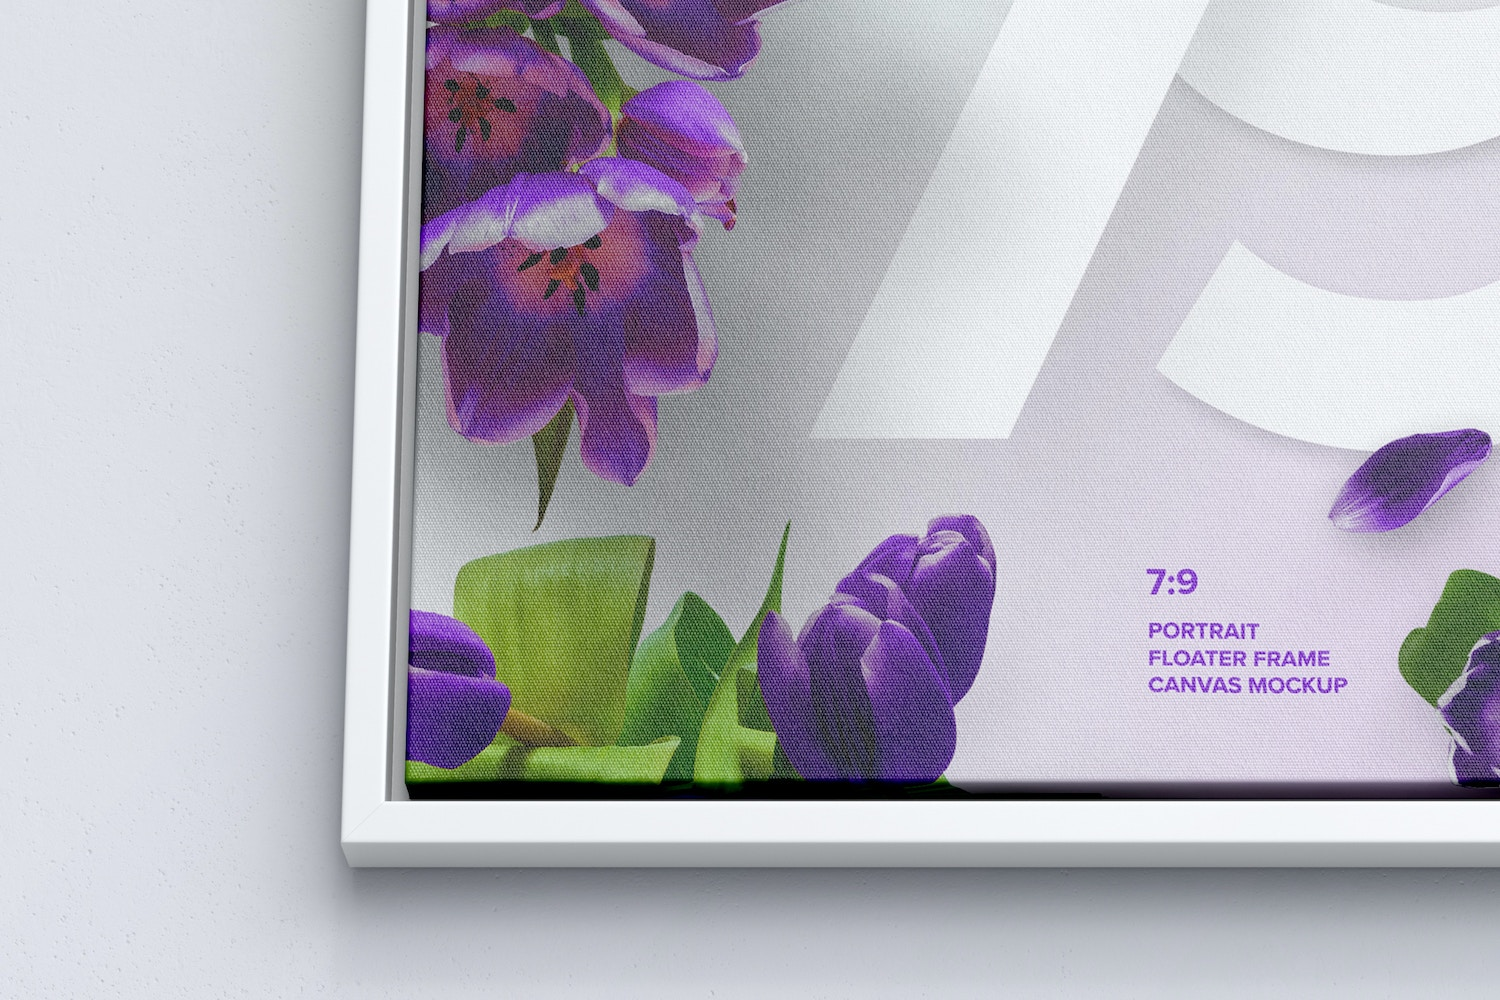 7:9 Portrait Canvas Mockup in Floater Frame, Bottom Front View